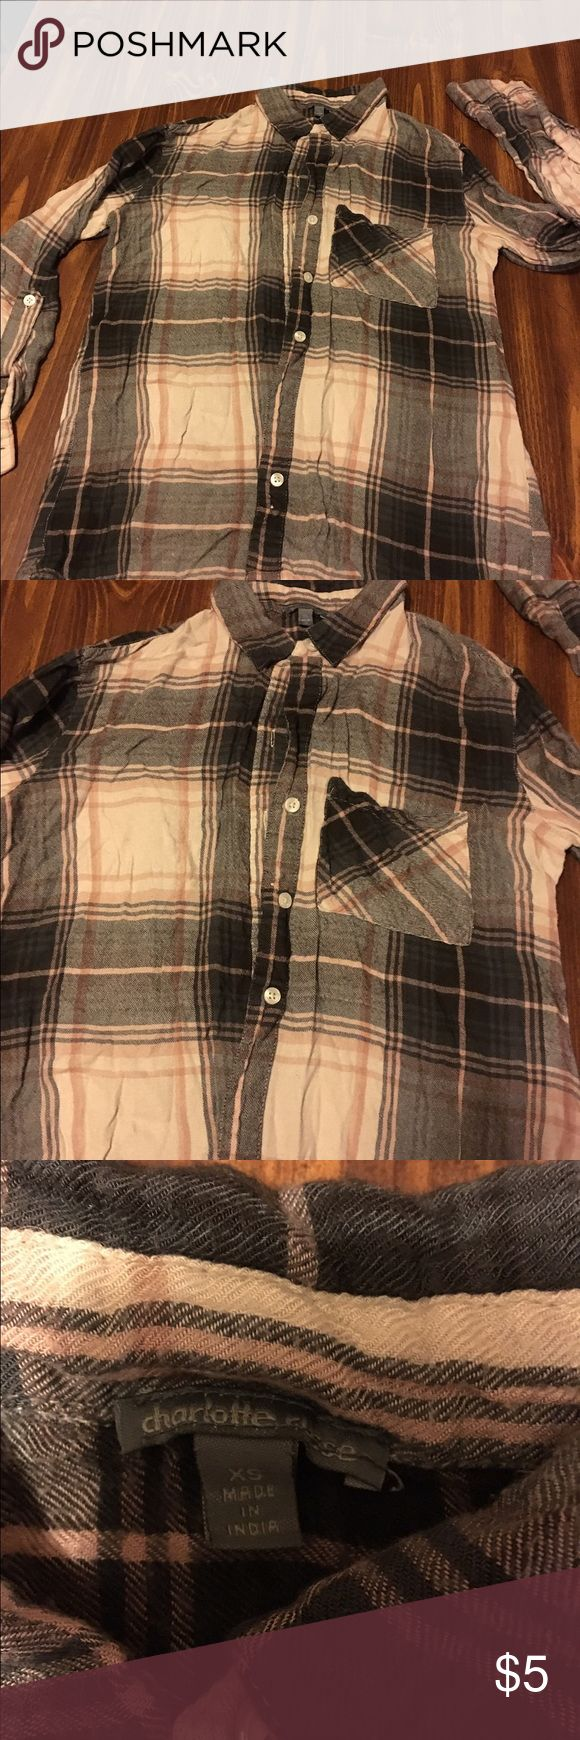 ❄️️✨Very soft and warm ladies flannel shirt✨❄️️ This is a sweet cozy shirt in pink and black tones. Wore twice and in great condition. Charlotte Russe Tops Button Down Shirts